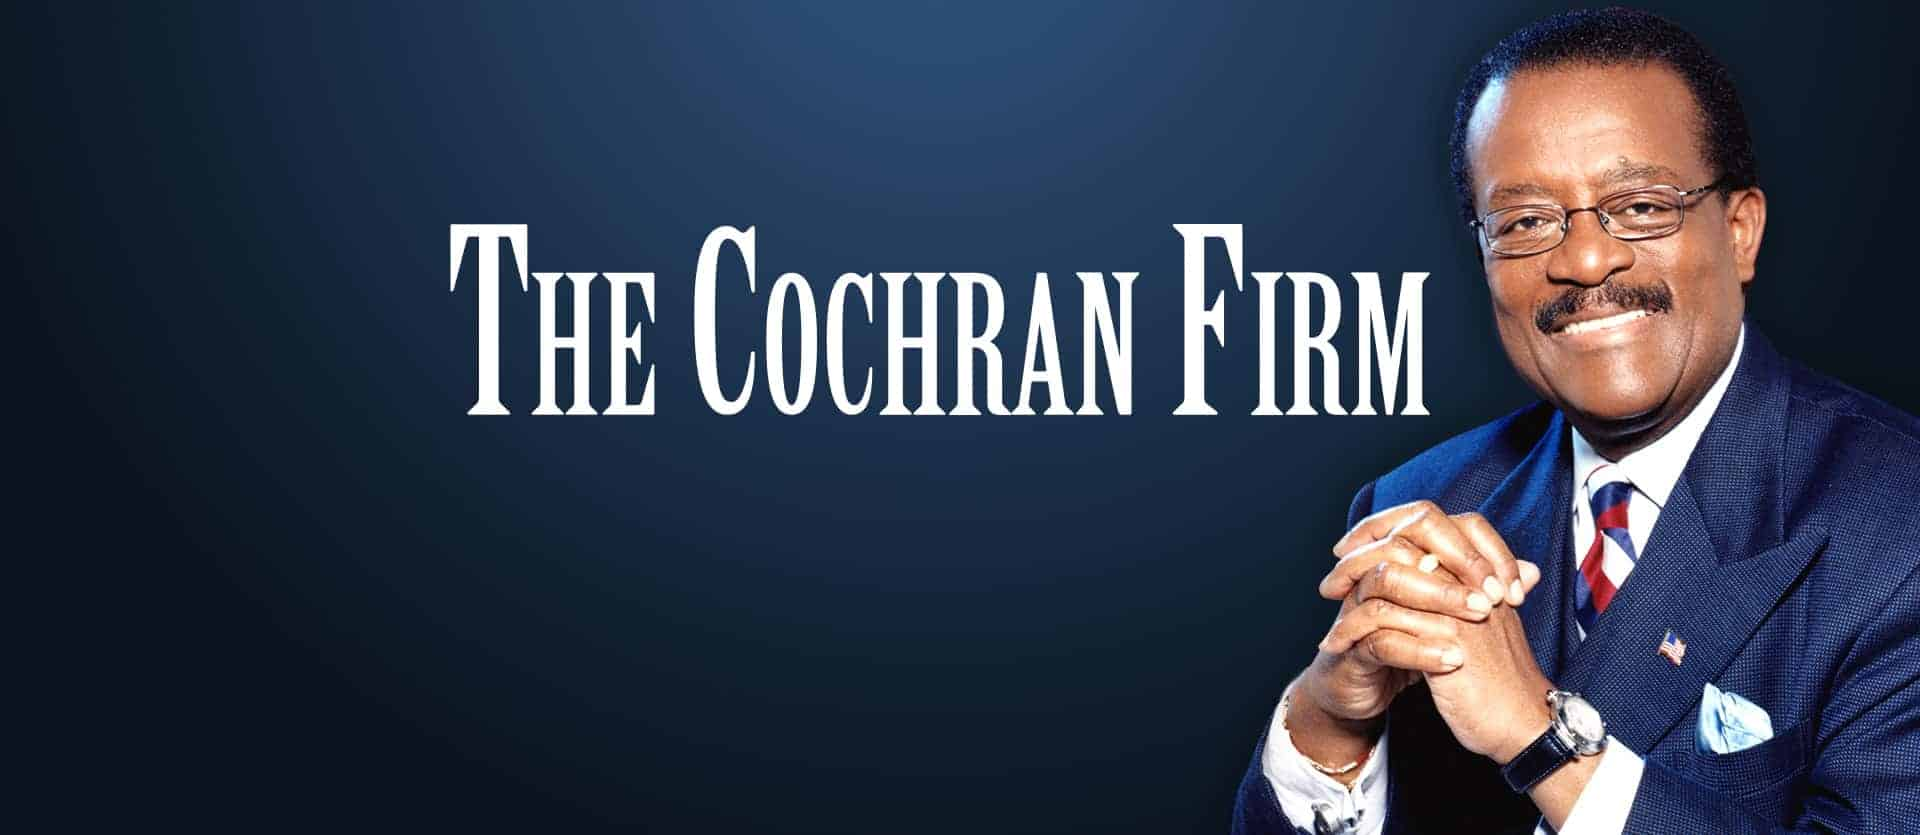 img- The Cochran Firm Logo with Image of Johnnie Cochran on Navy Gradient Background